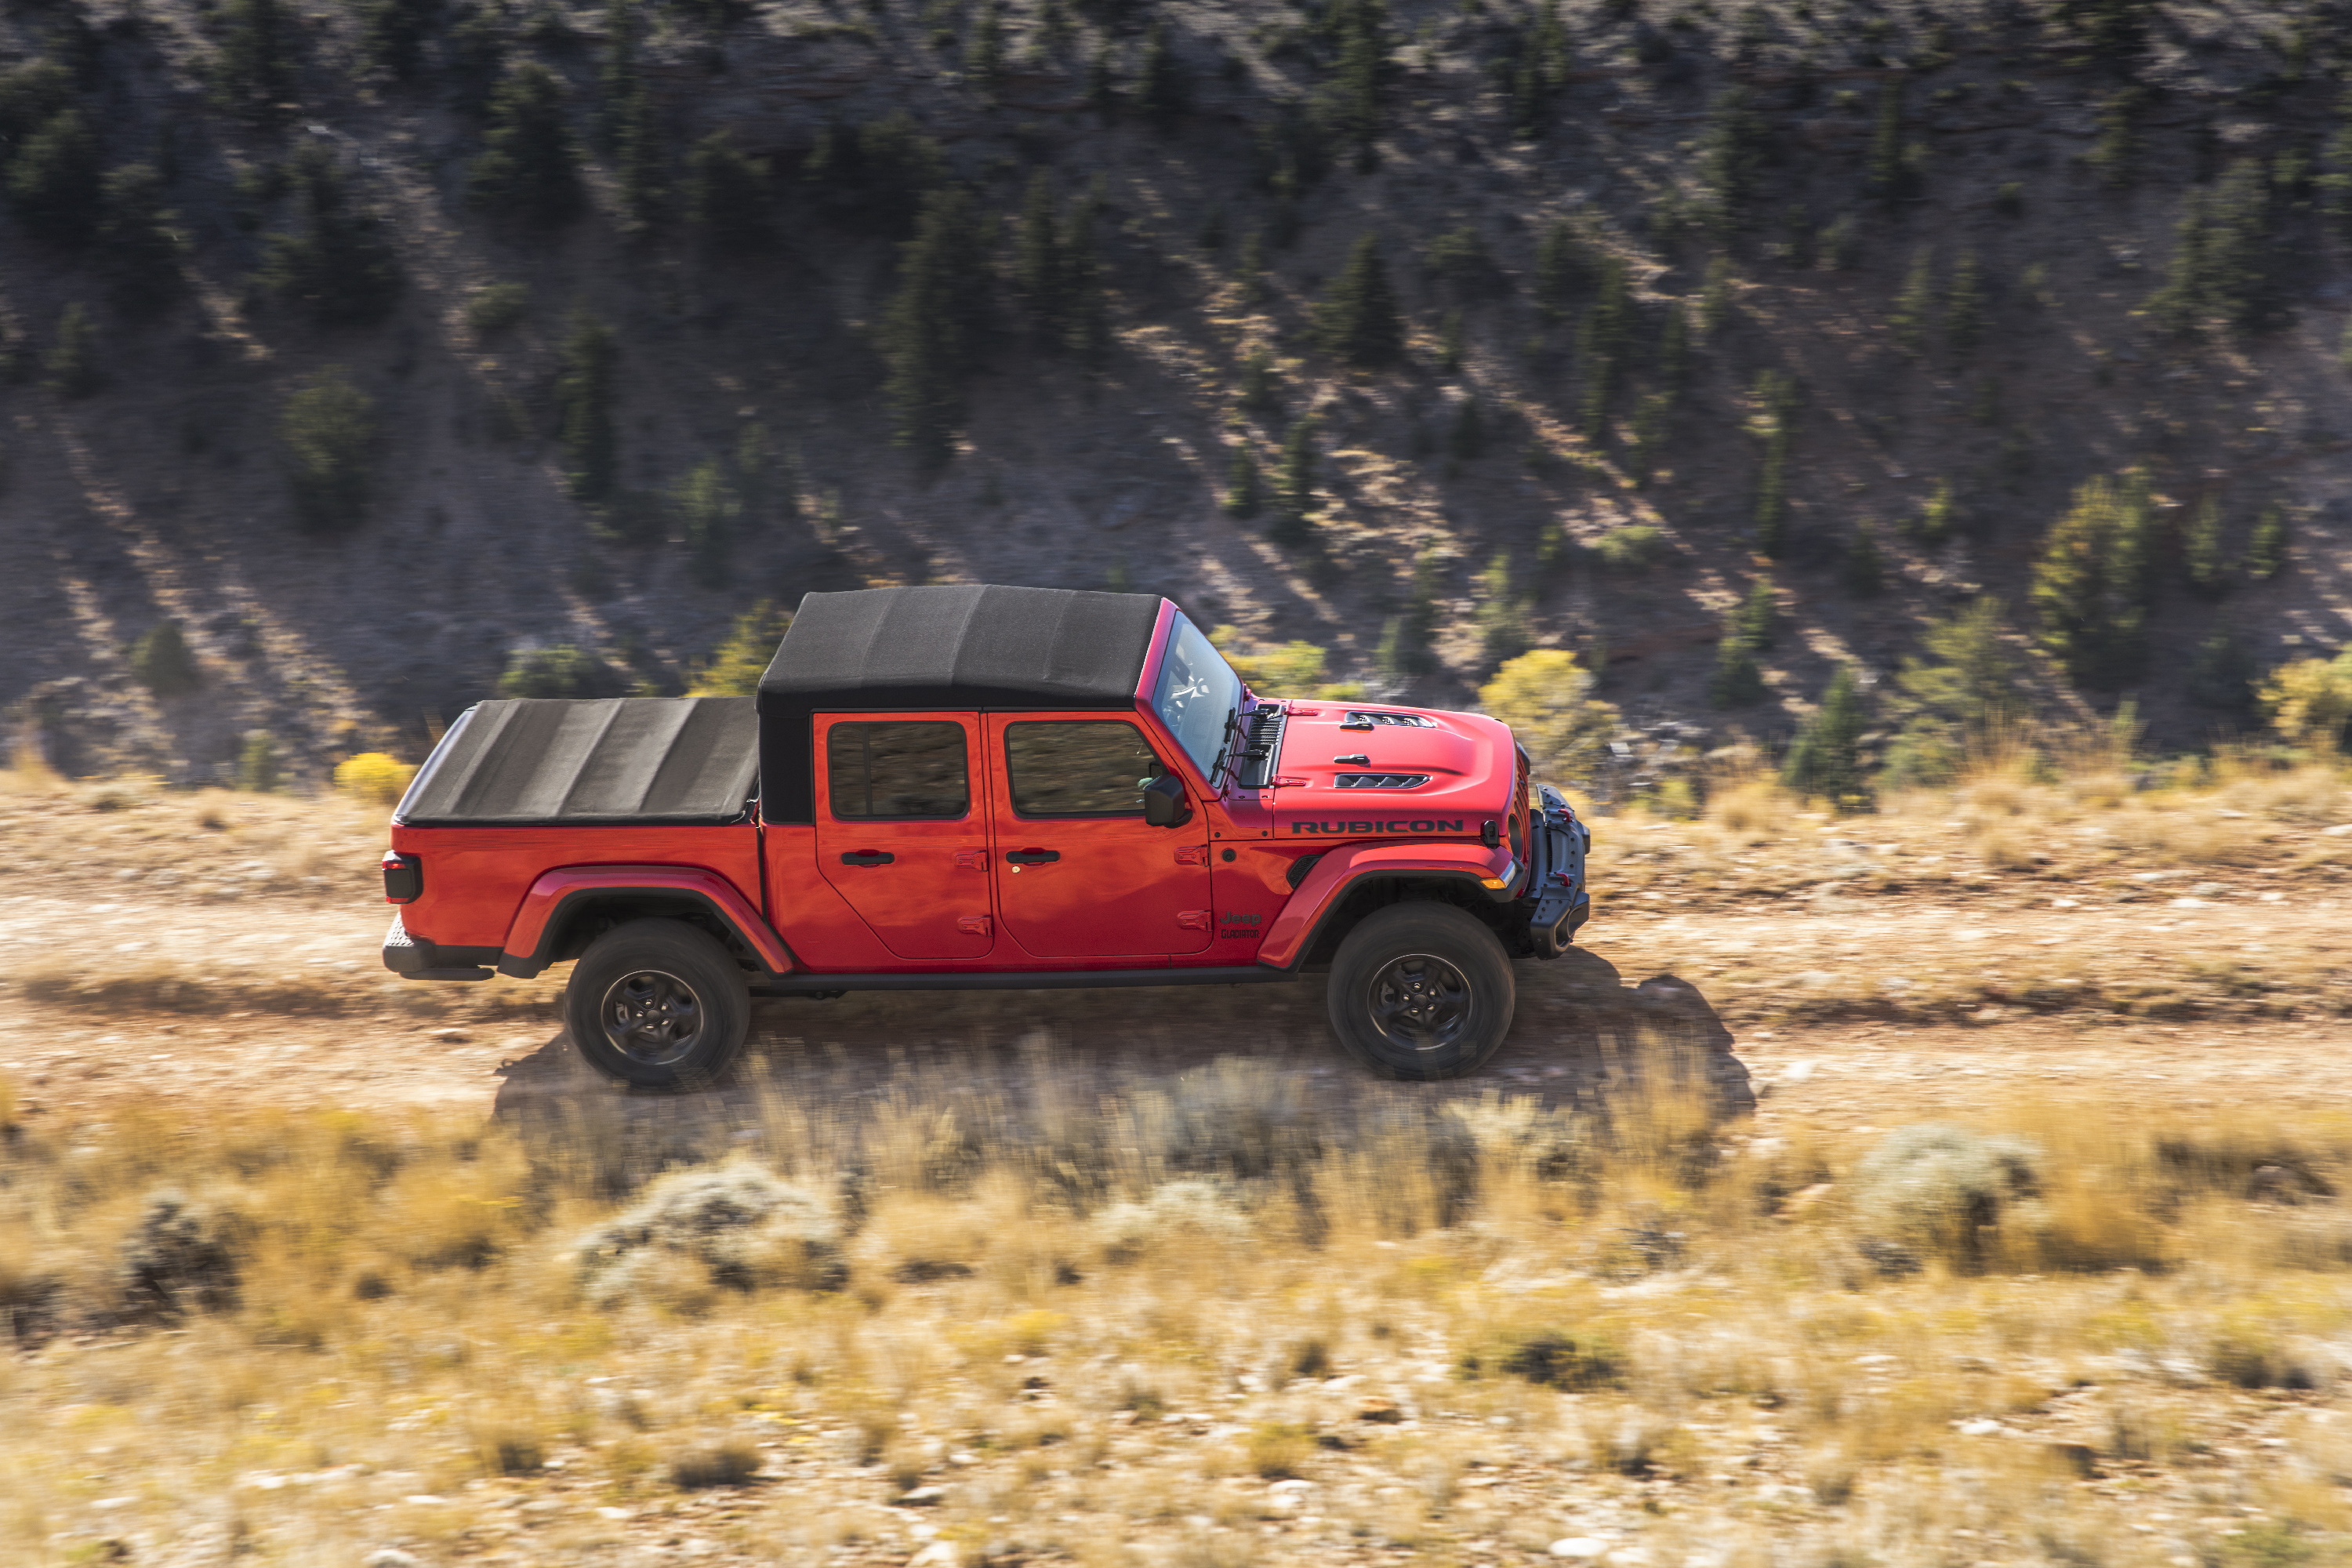 2020 Jeep Gladiator: The Solid-Axle, Open-Air Truck of ...